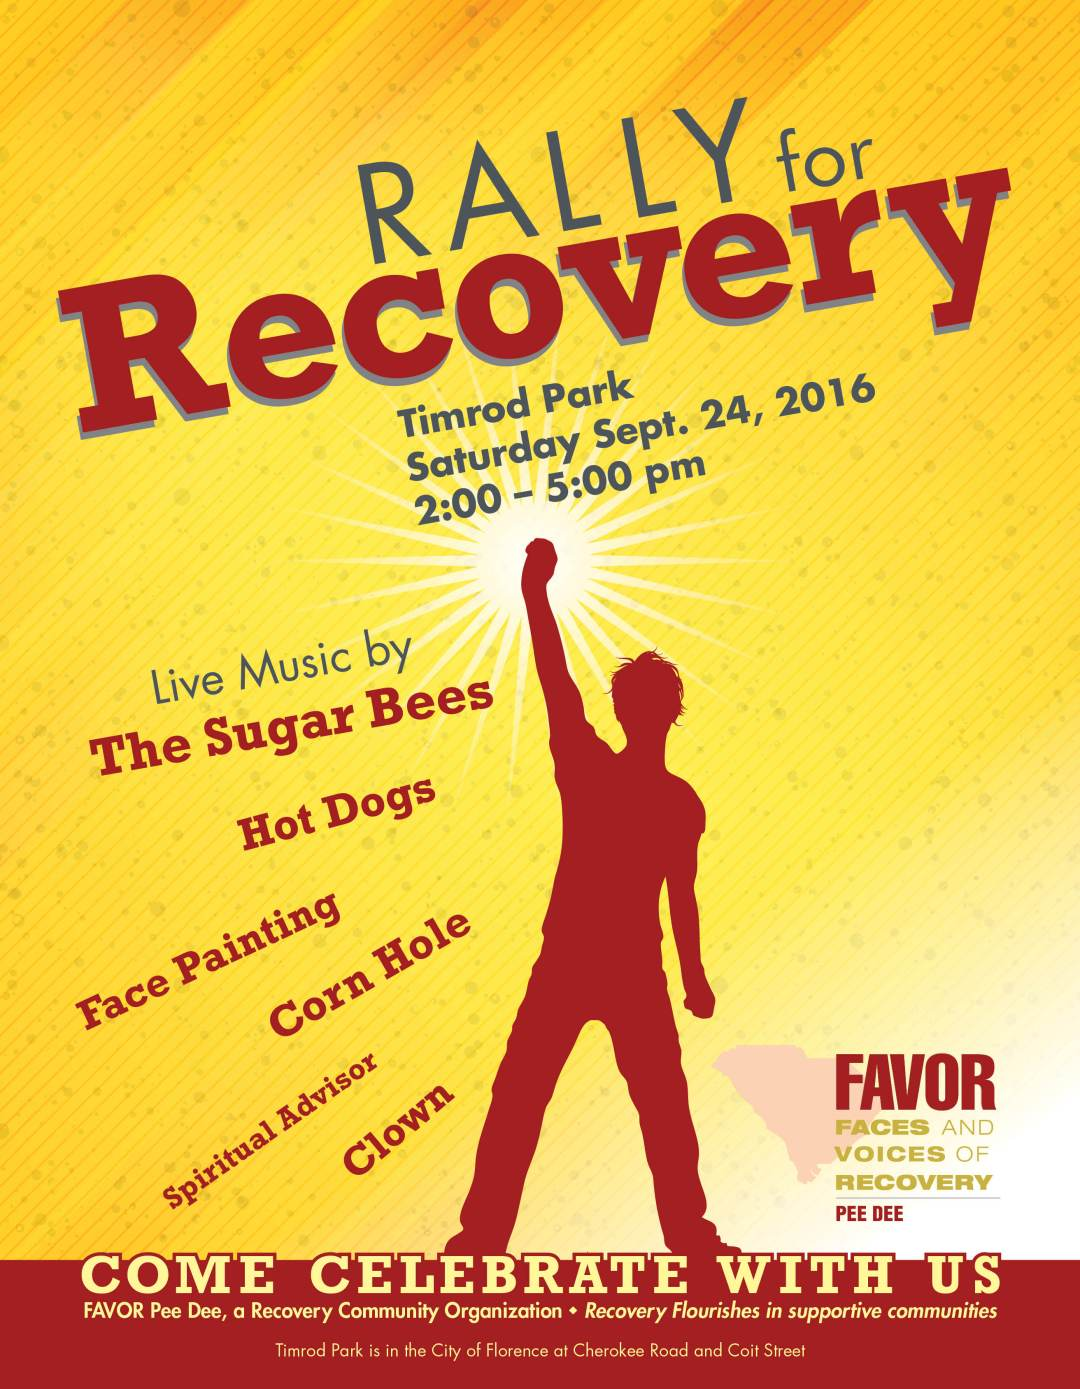 59891 Frank McIntyre 8.5x11 Rally for Recovery Flyer